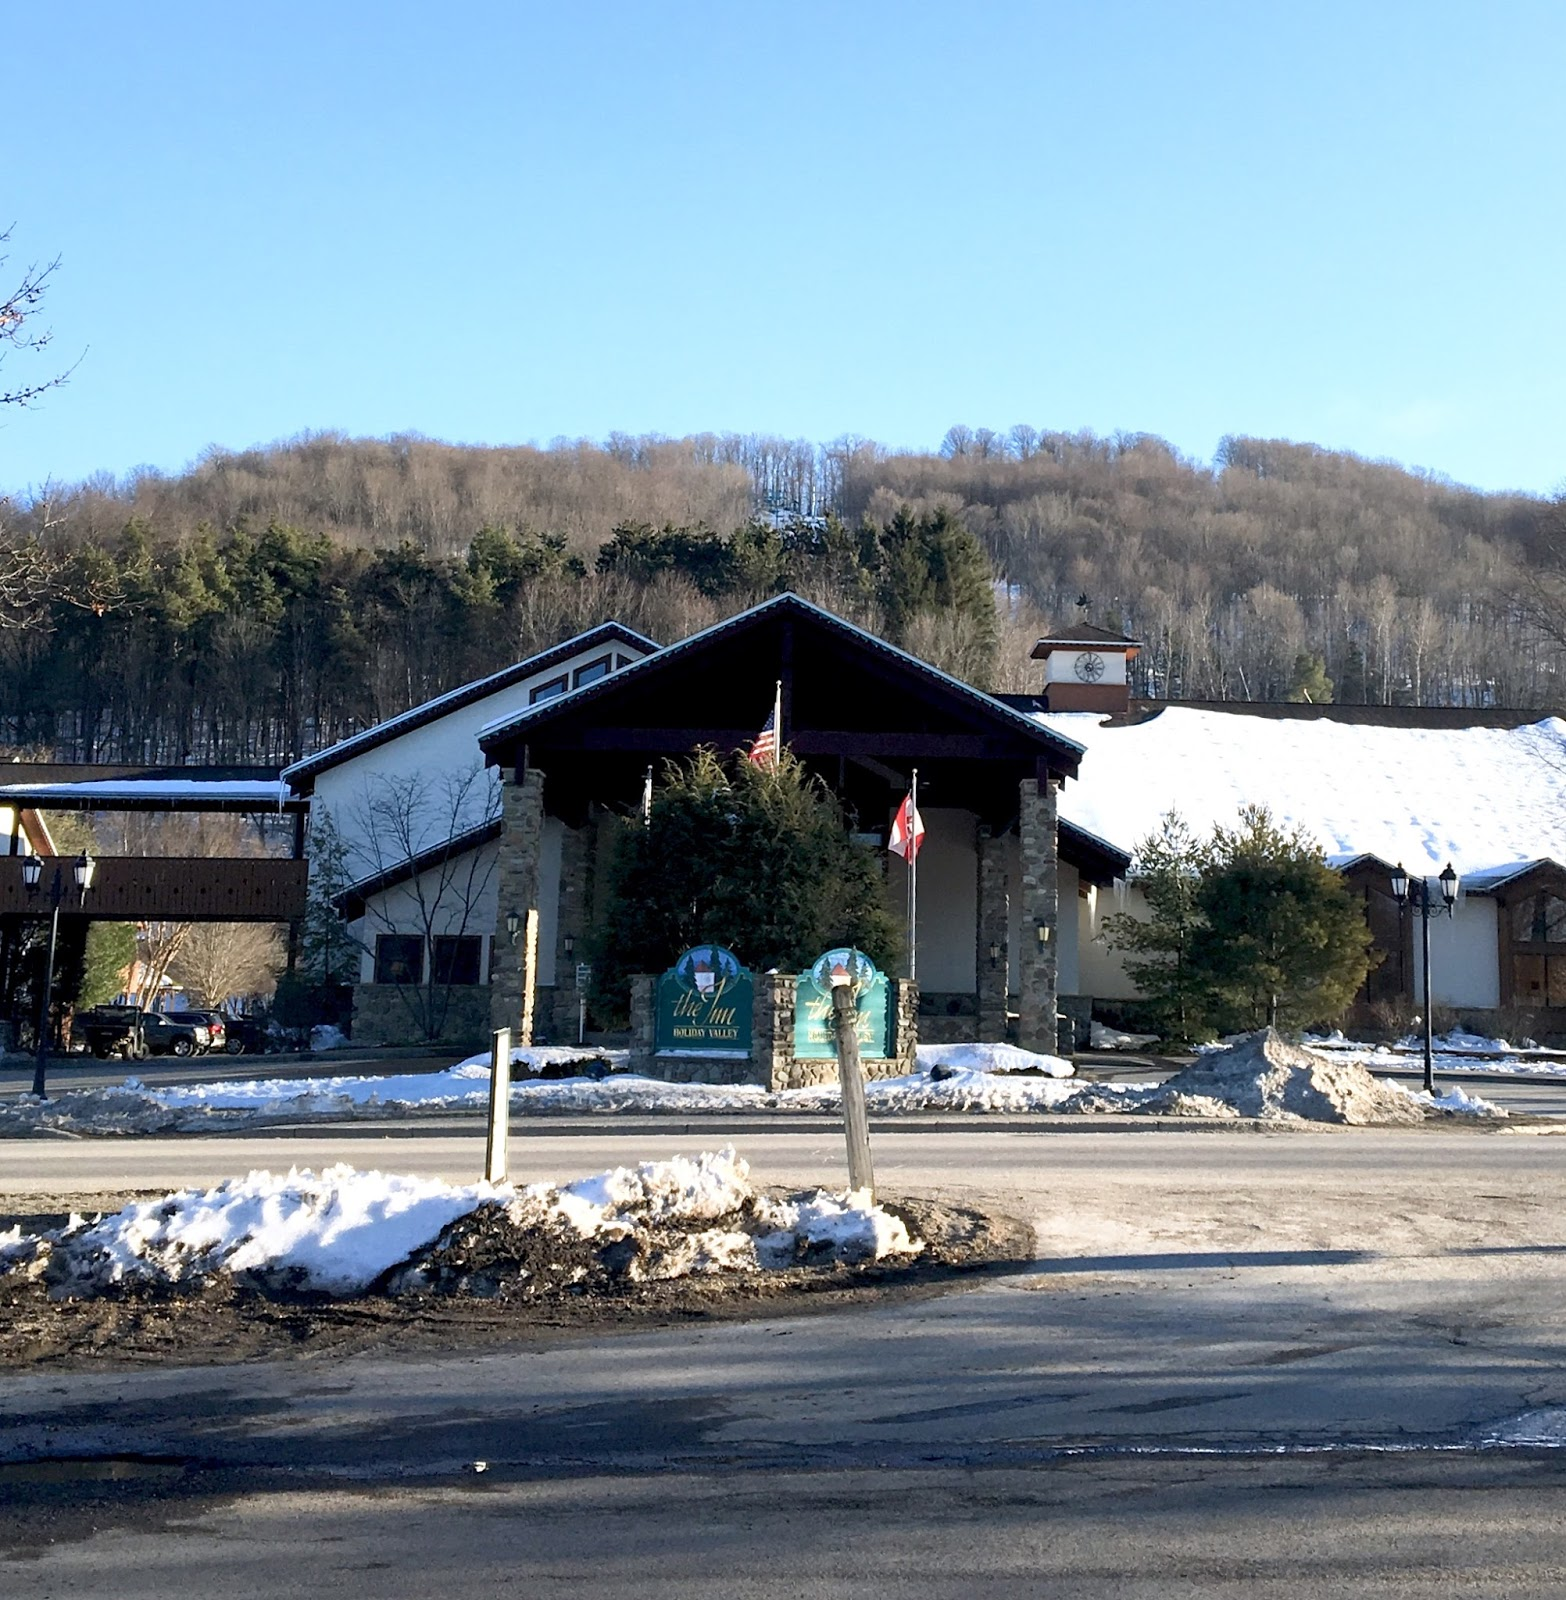 Road-trip-to-florida-the-inn-at-holiday-valley-ellicottville-ny